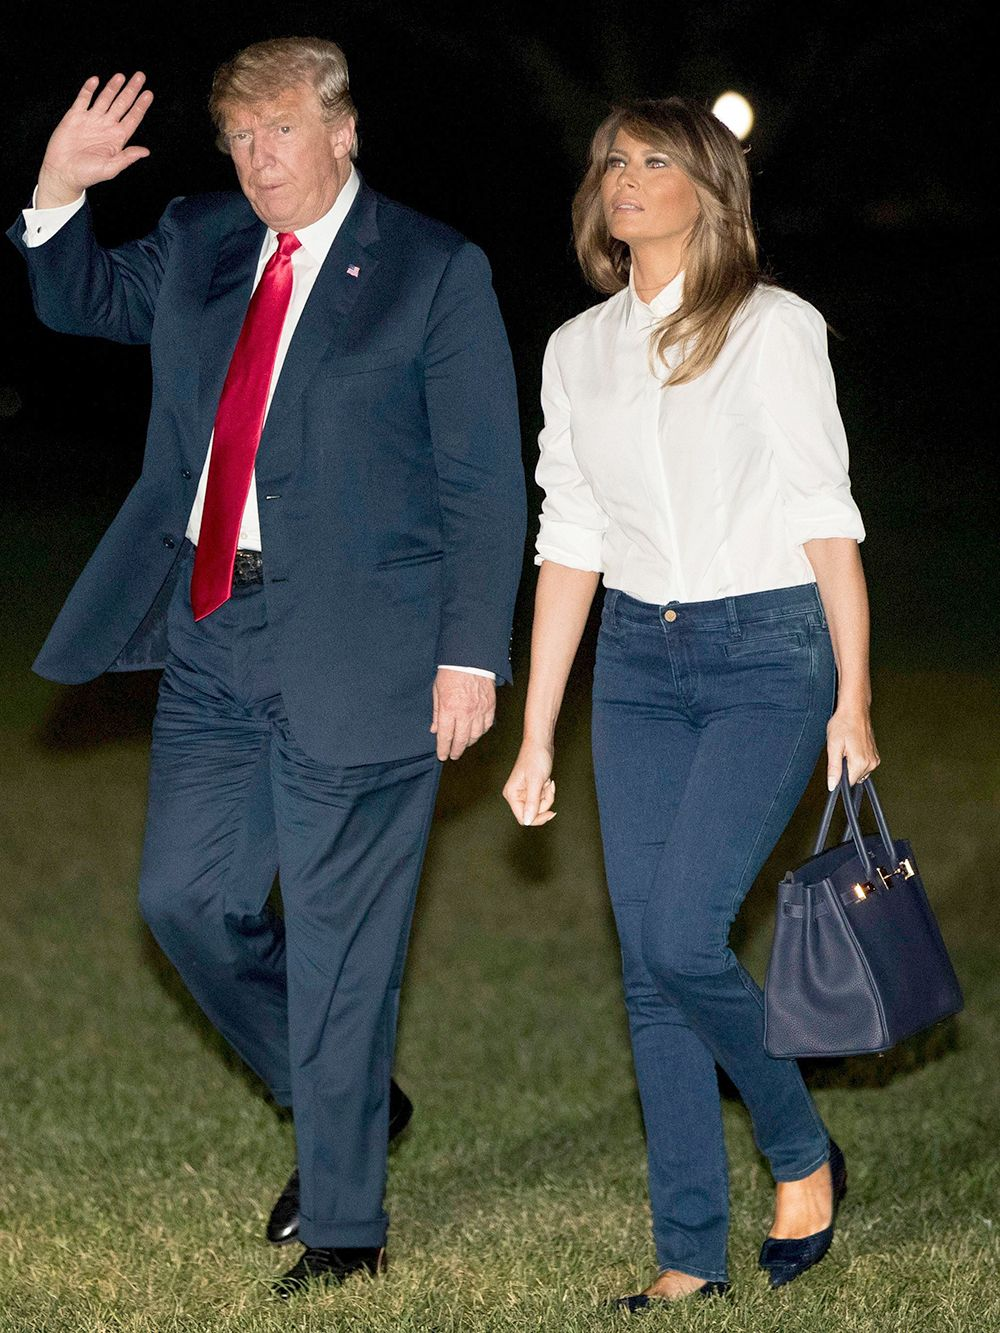 8e29fe9b57 Melania Trump returns to the US on July 16 wearing jeans and flats after  meeting with NATO and Putin.